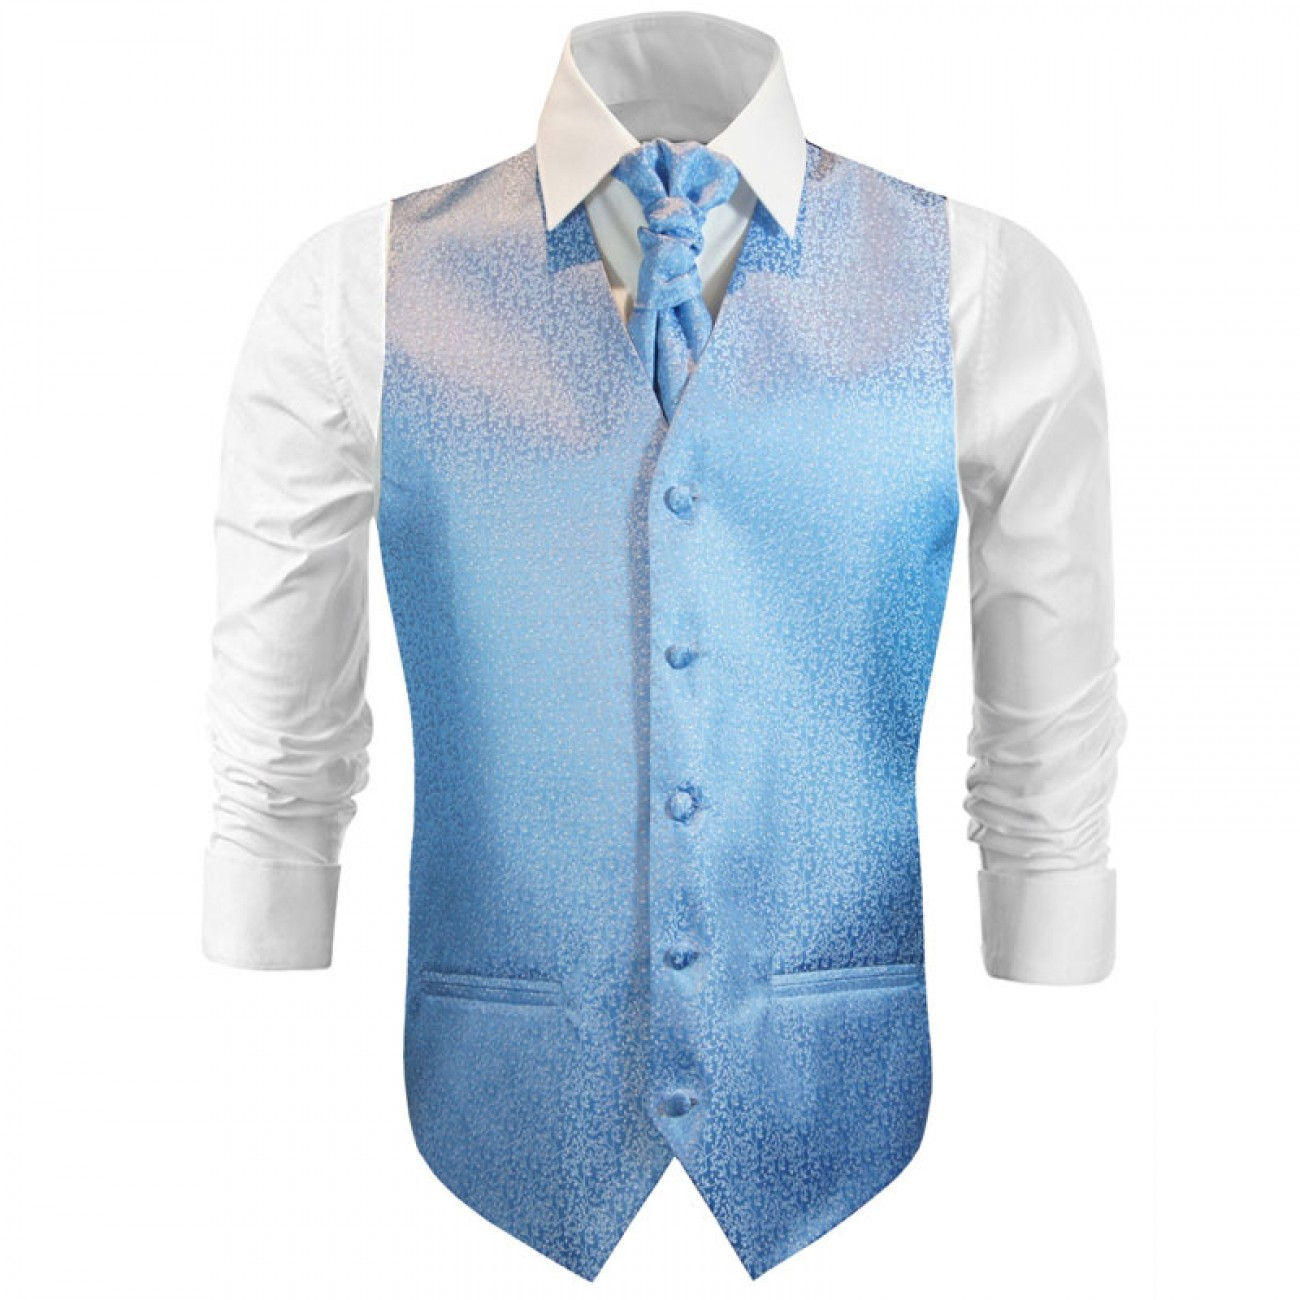 Wedding waistcoat with ascot tie light blue floral